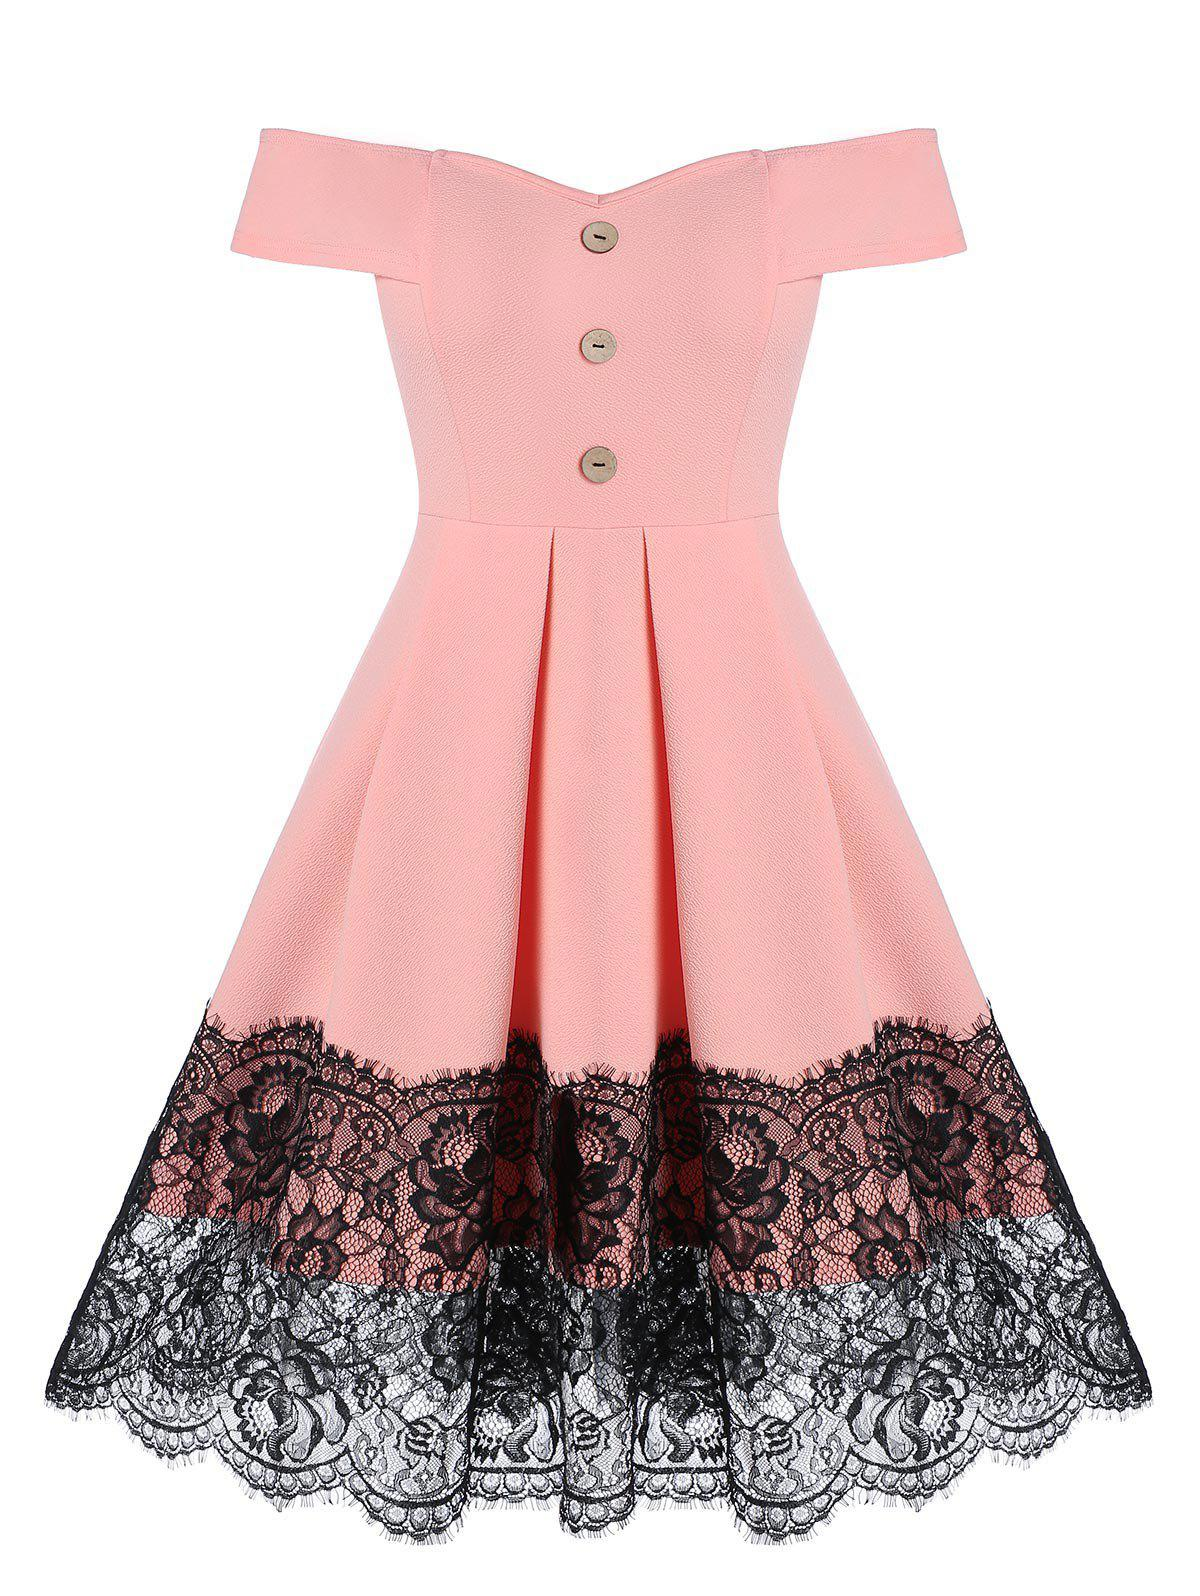 Store Off the Shoulder Lace Insert Mock Button Flare Dress